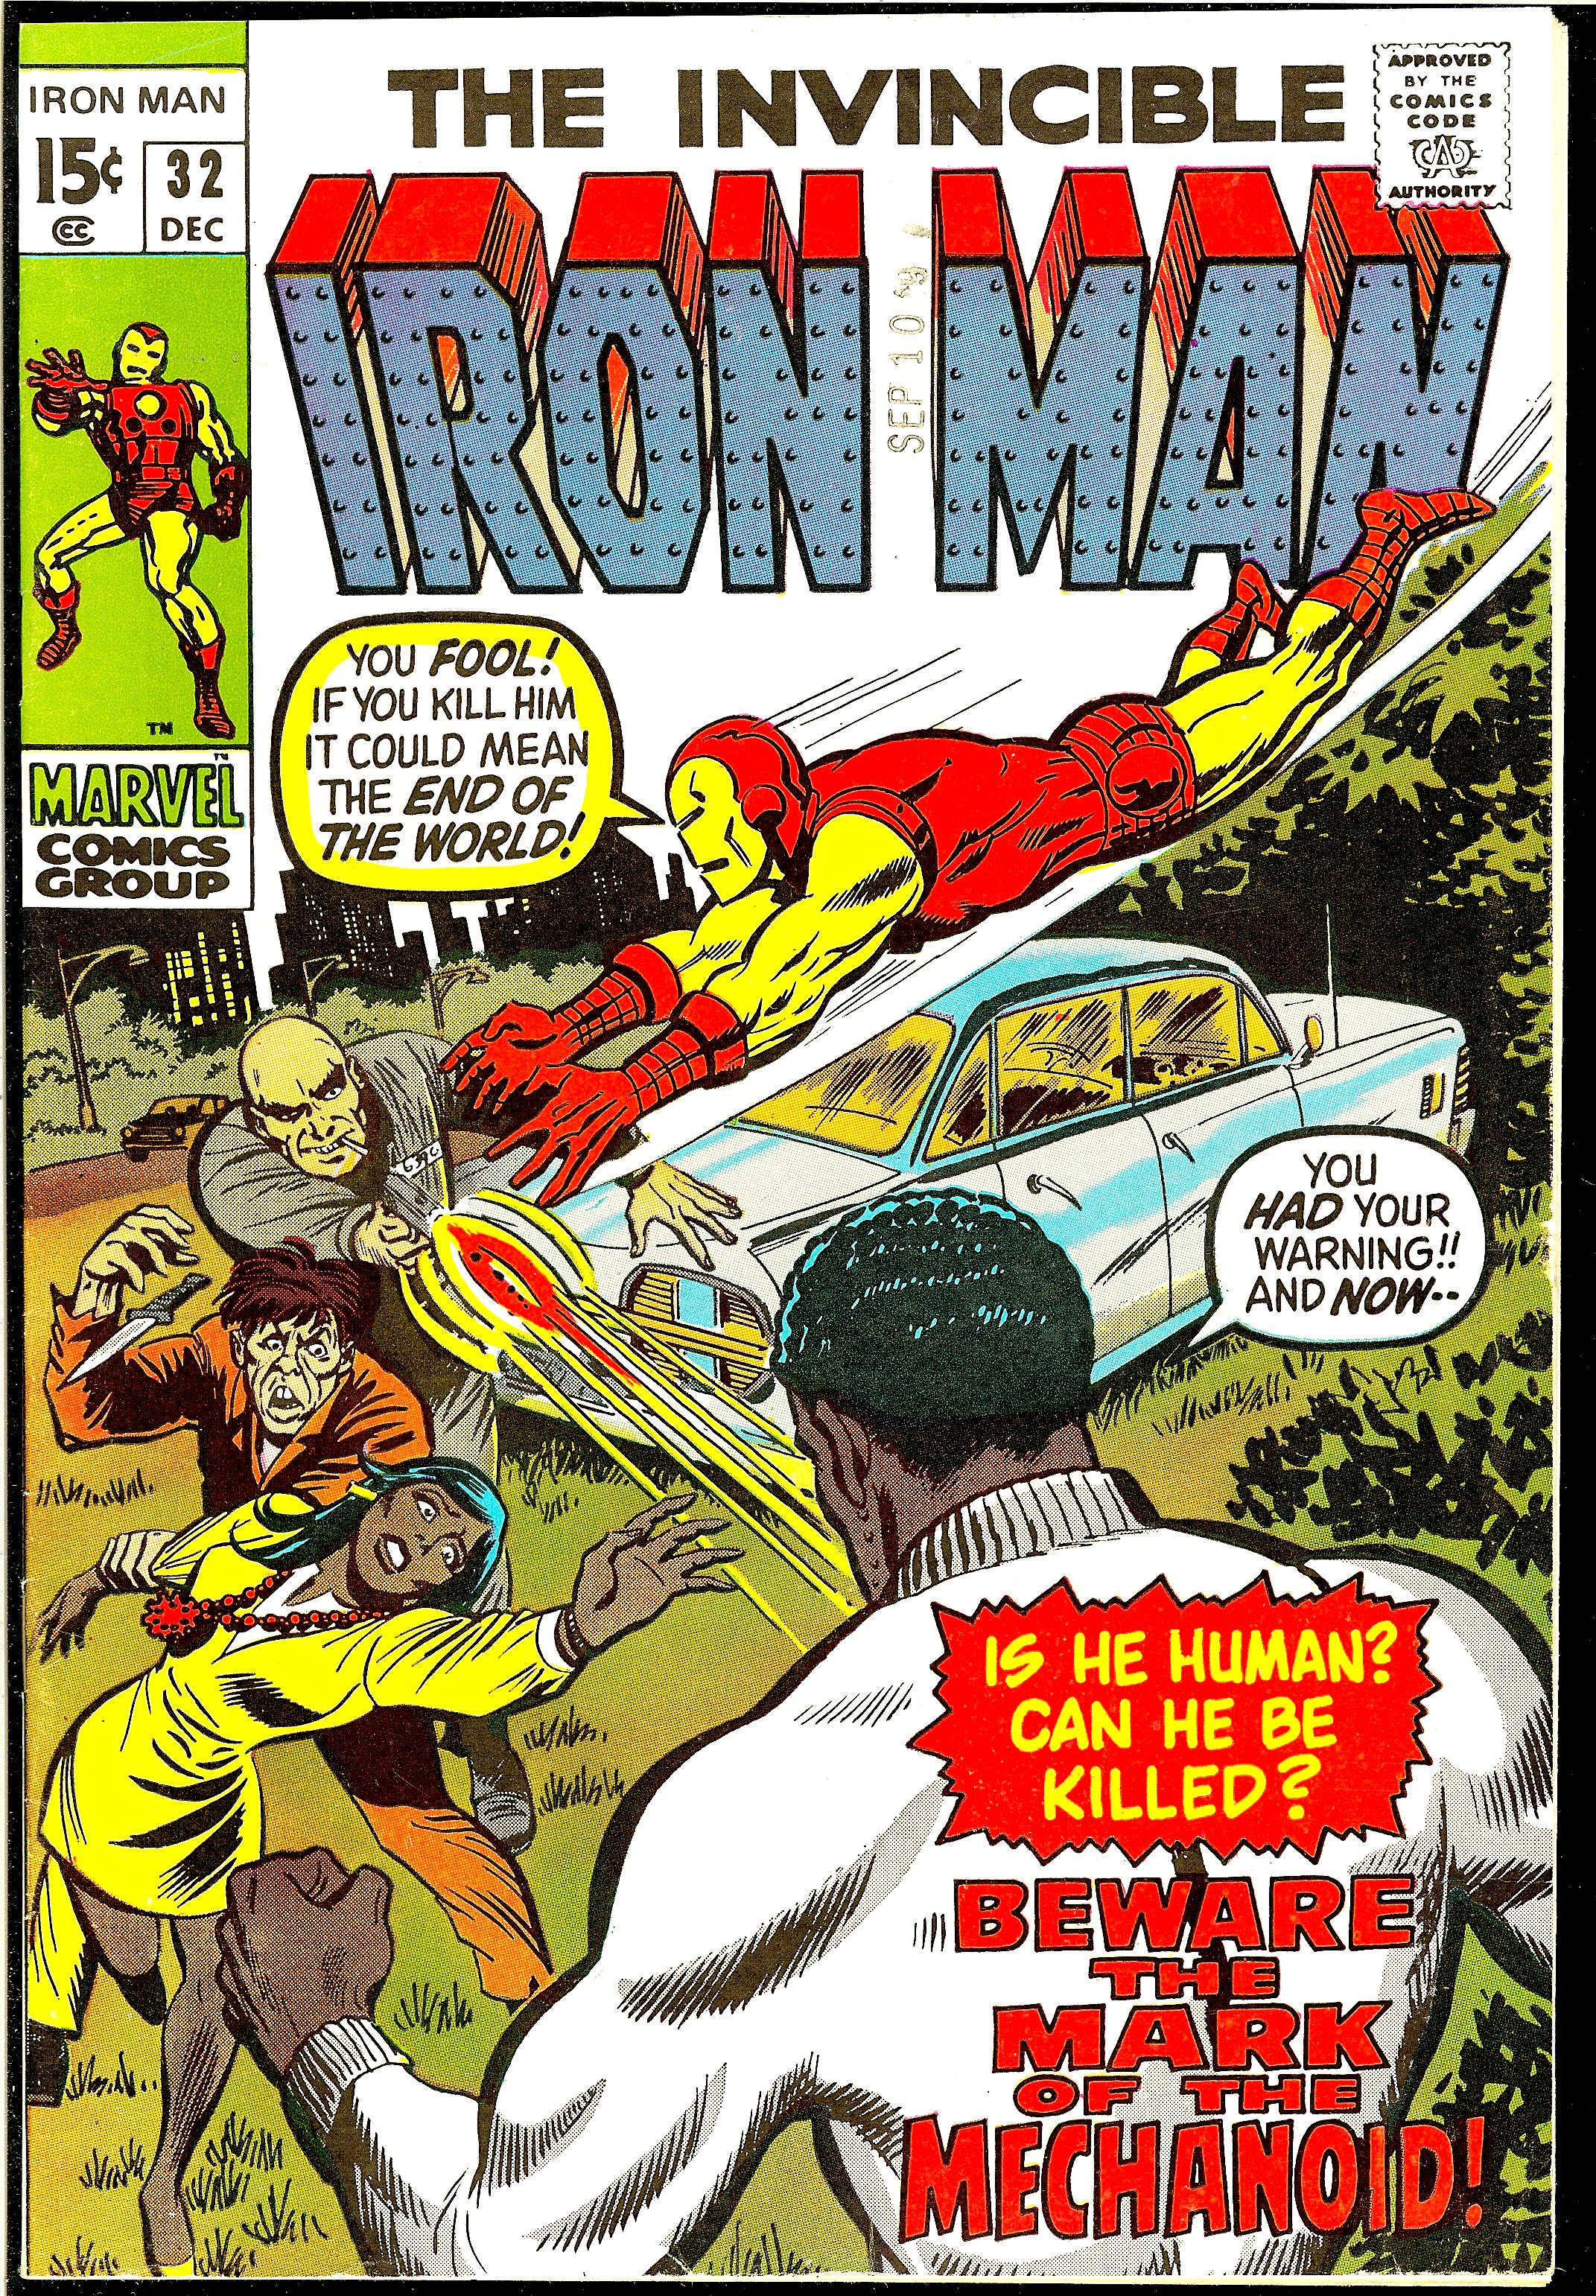 Man 32 Indicted In Alleged Misconduct With 14 Year Old: Iron Man #32